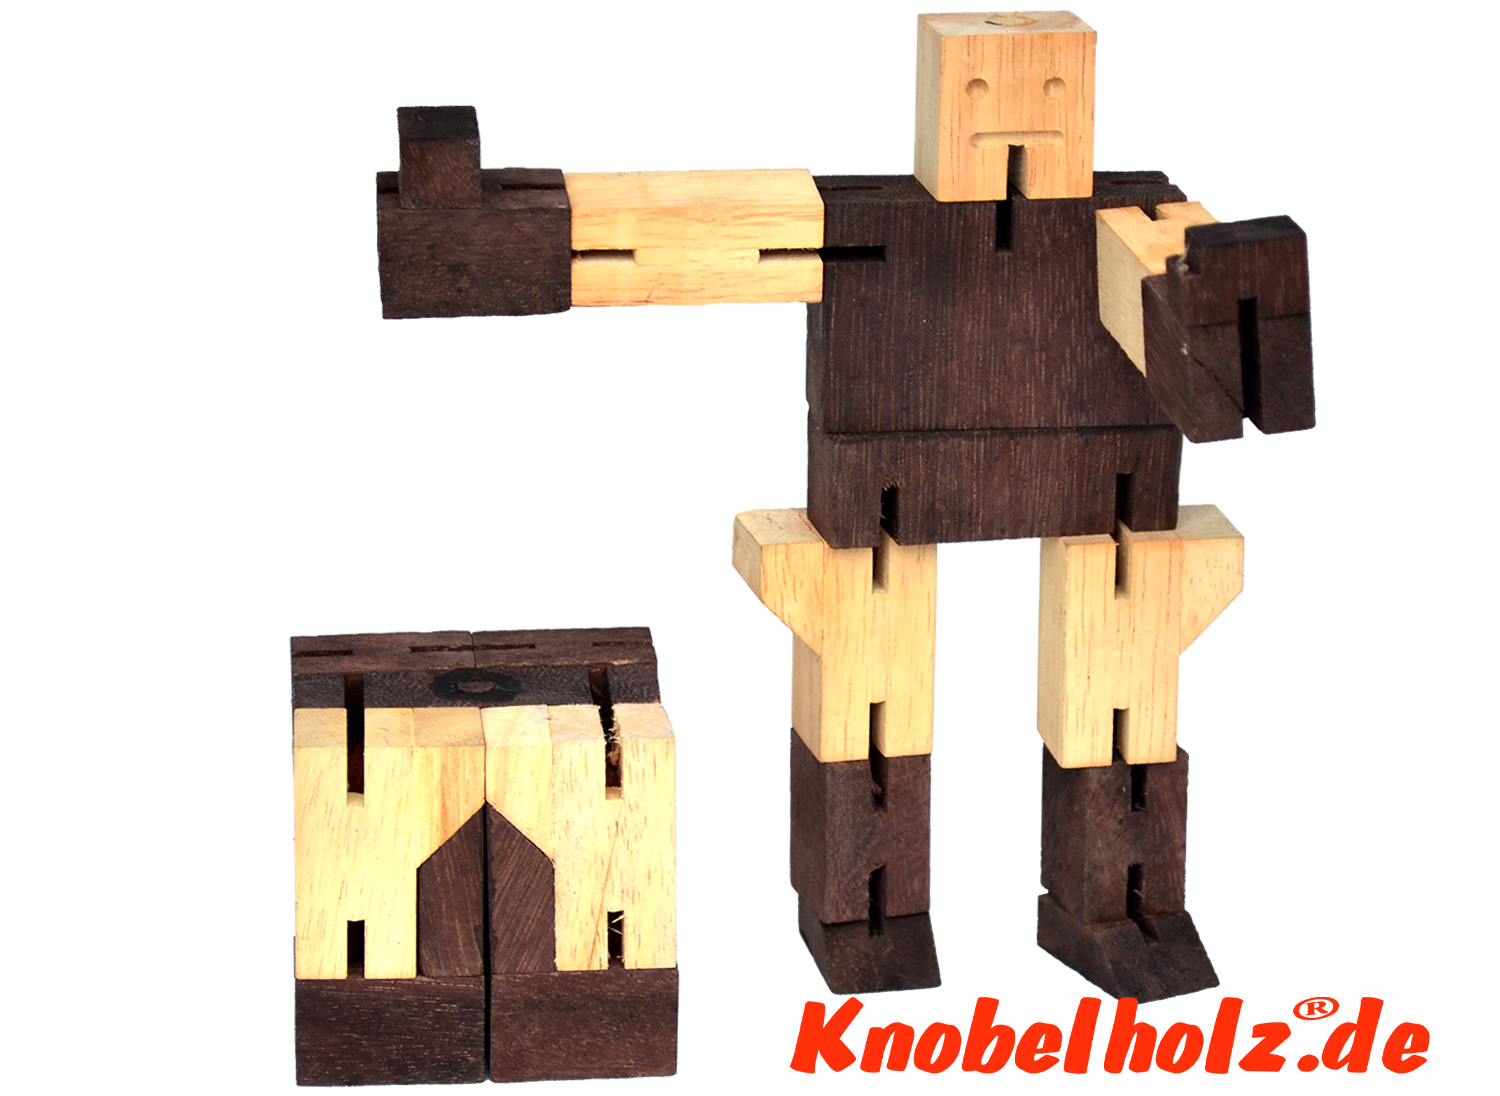 roboter holz puzzle, transformer, boy puzzle, robot wooden puzzle